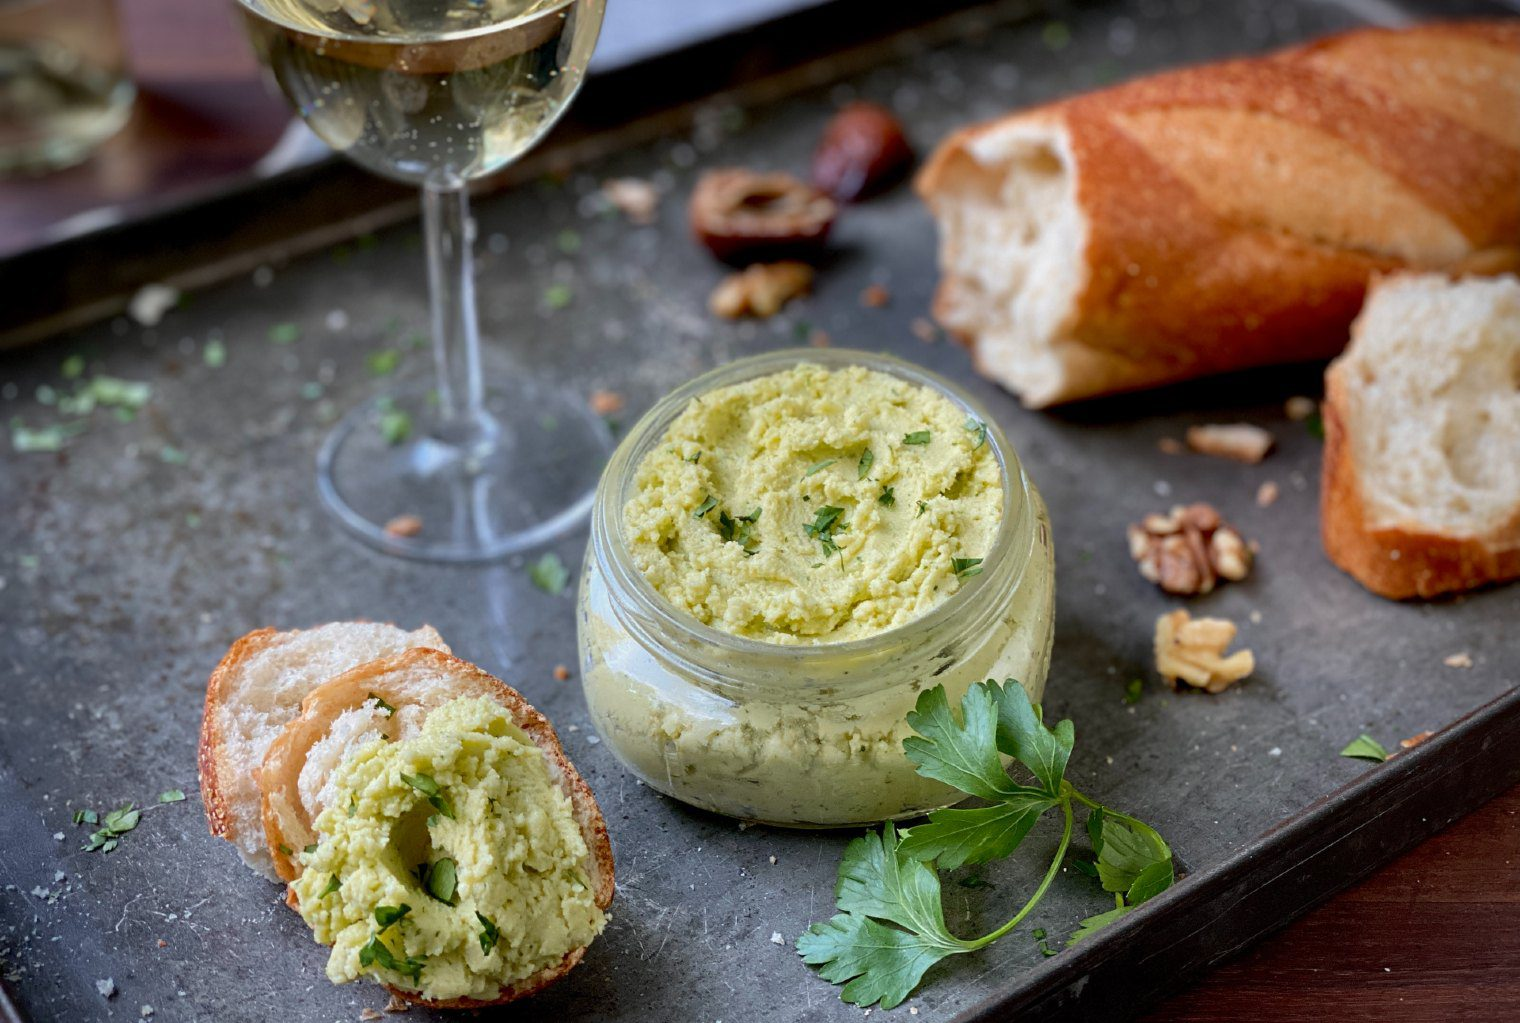 5-ingredient cheese spread with parsley in a glass jar served with a baguette and a glass of white wine.